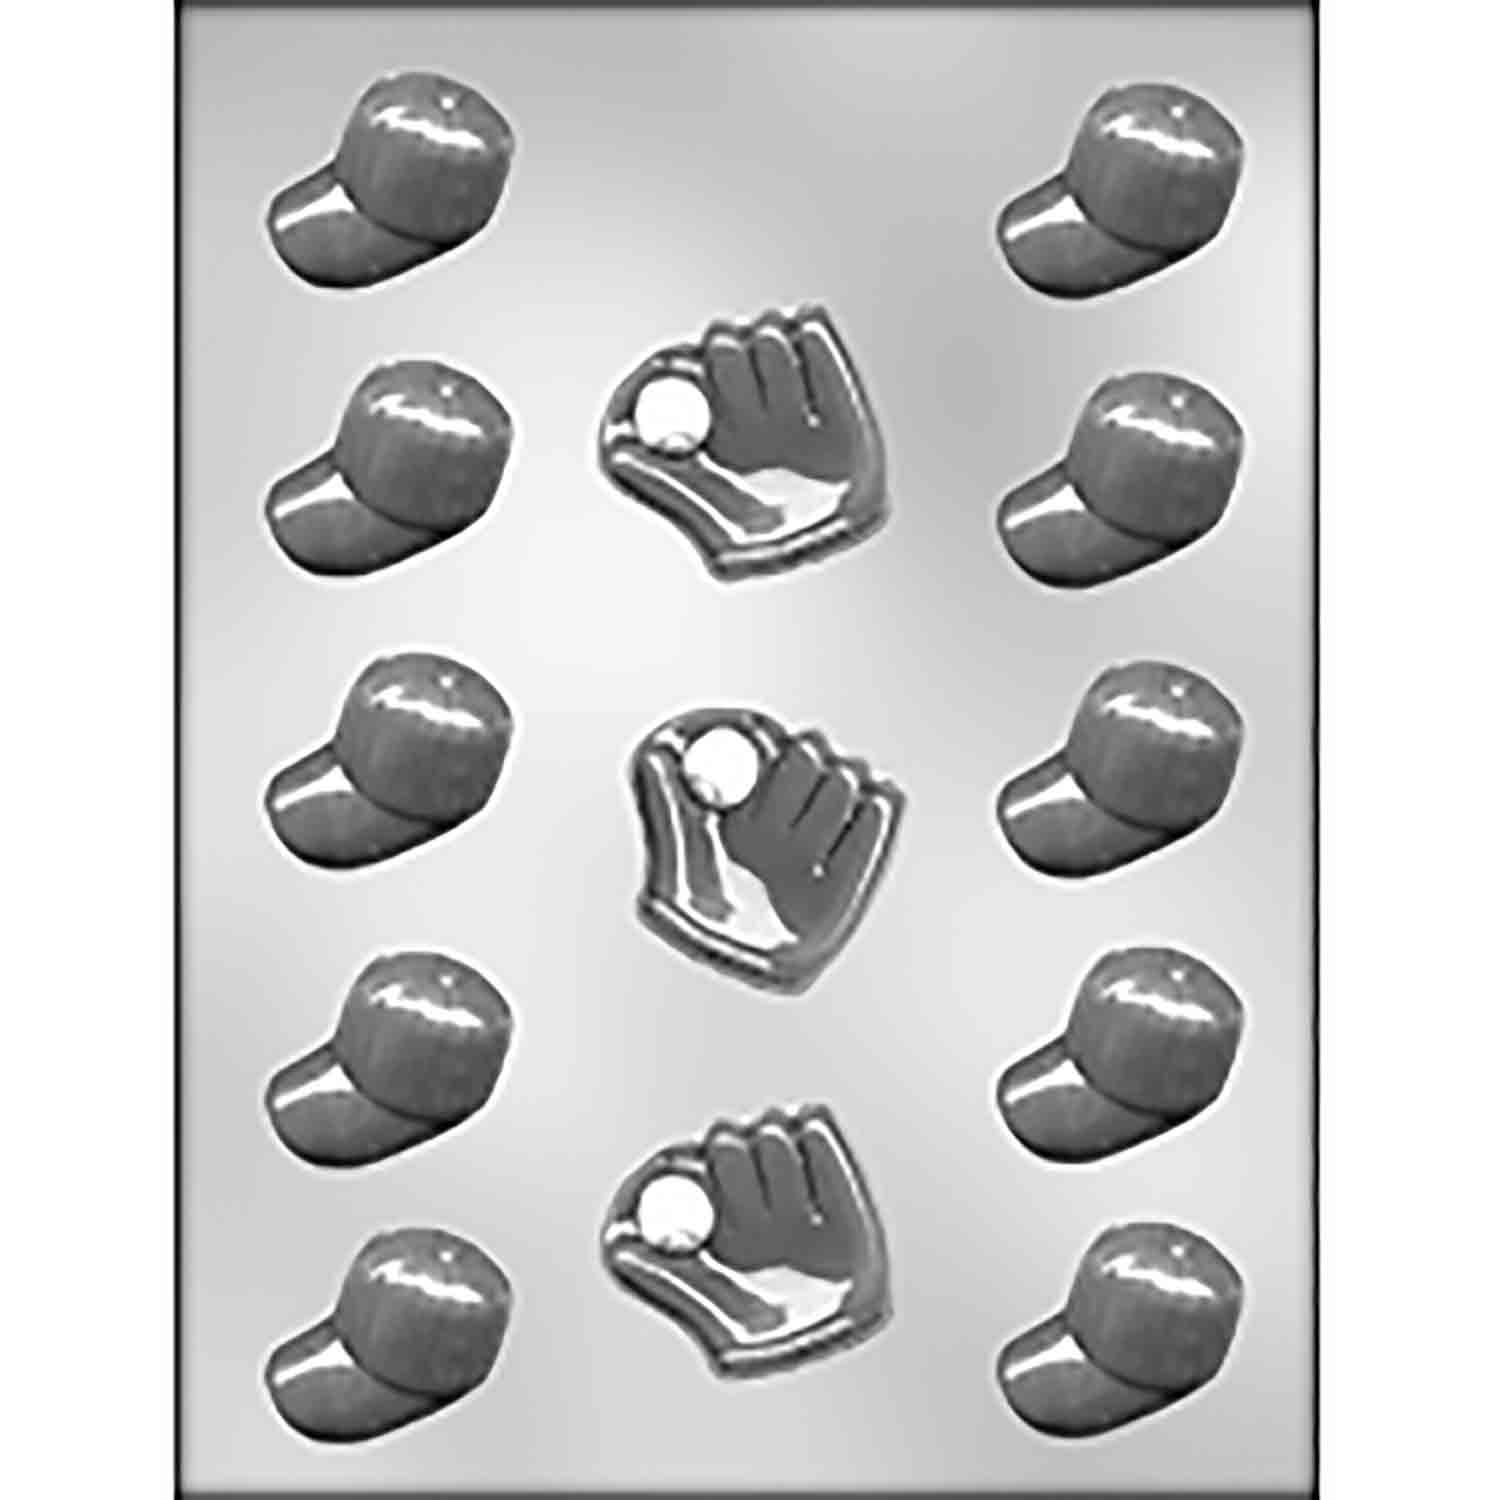 Baseball Caps & Gloves Chocolate Candy Mold